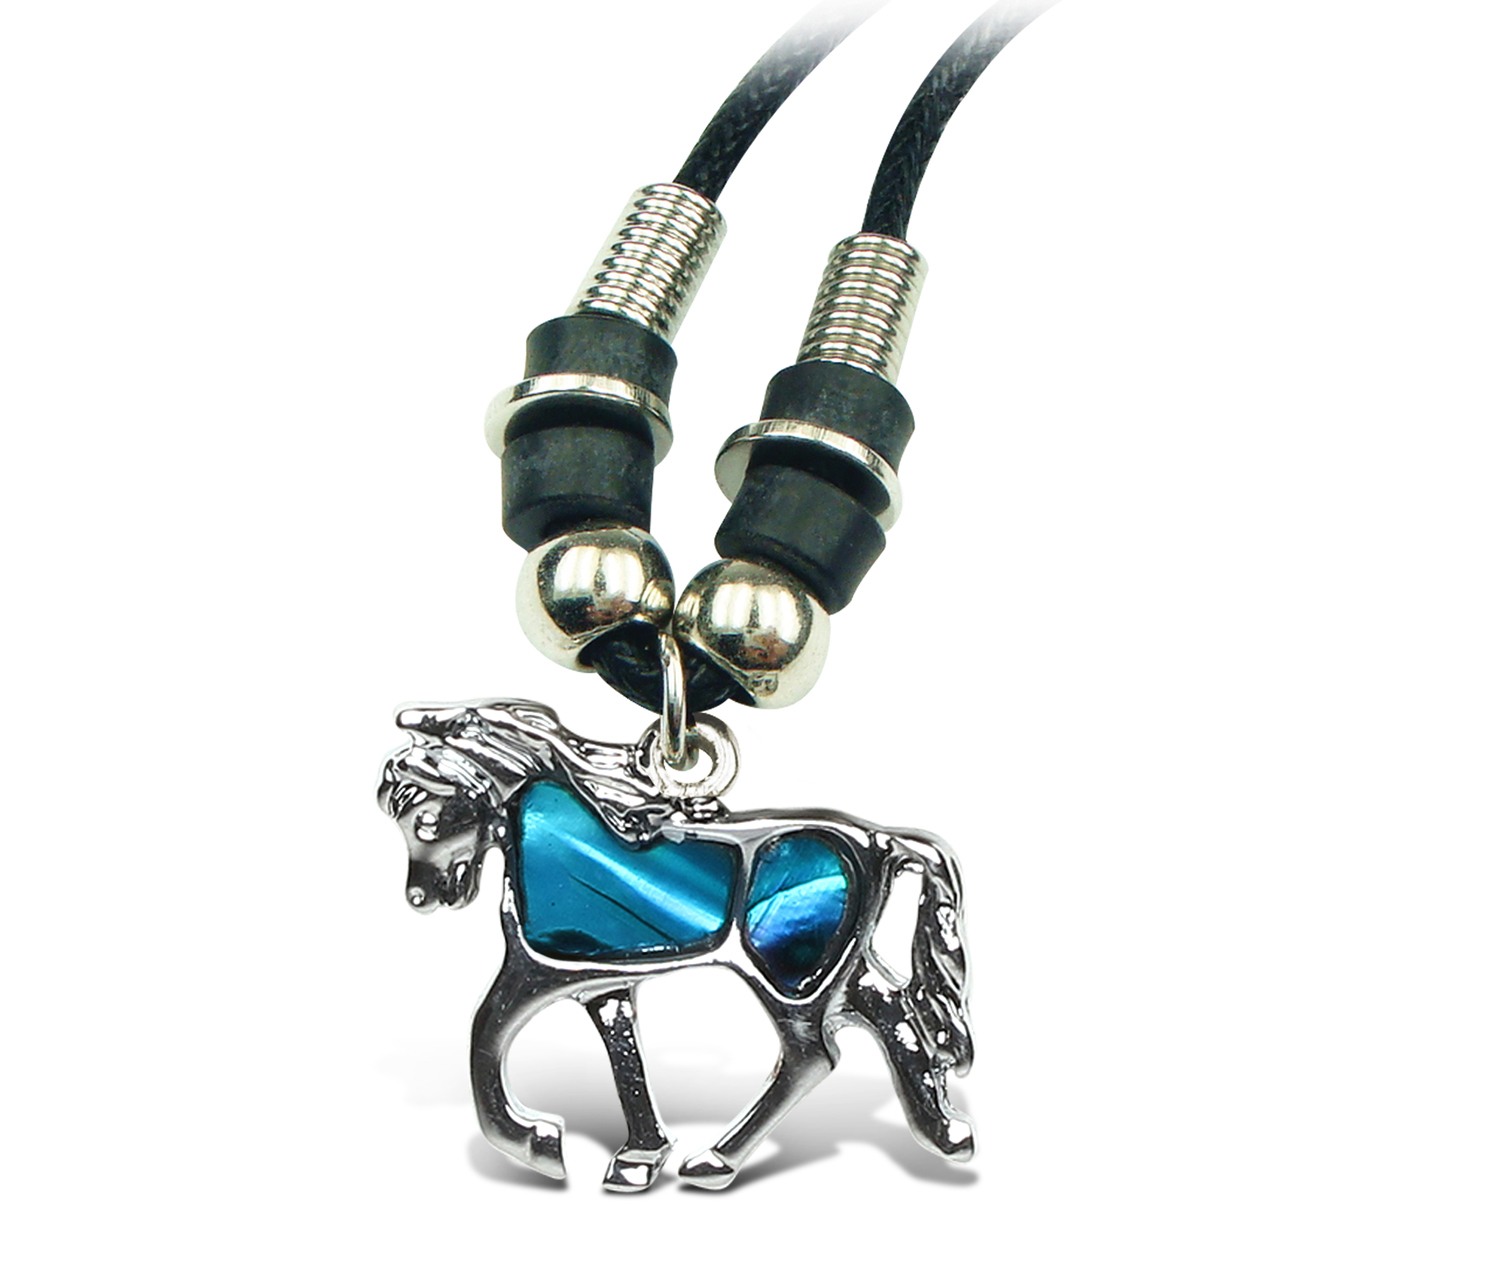 Aqua JEWELRY Necklace Wild Style Chain 18 Horse